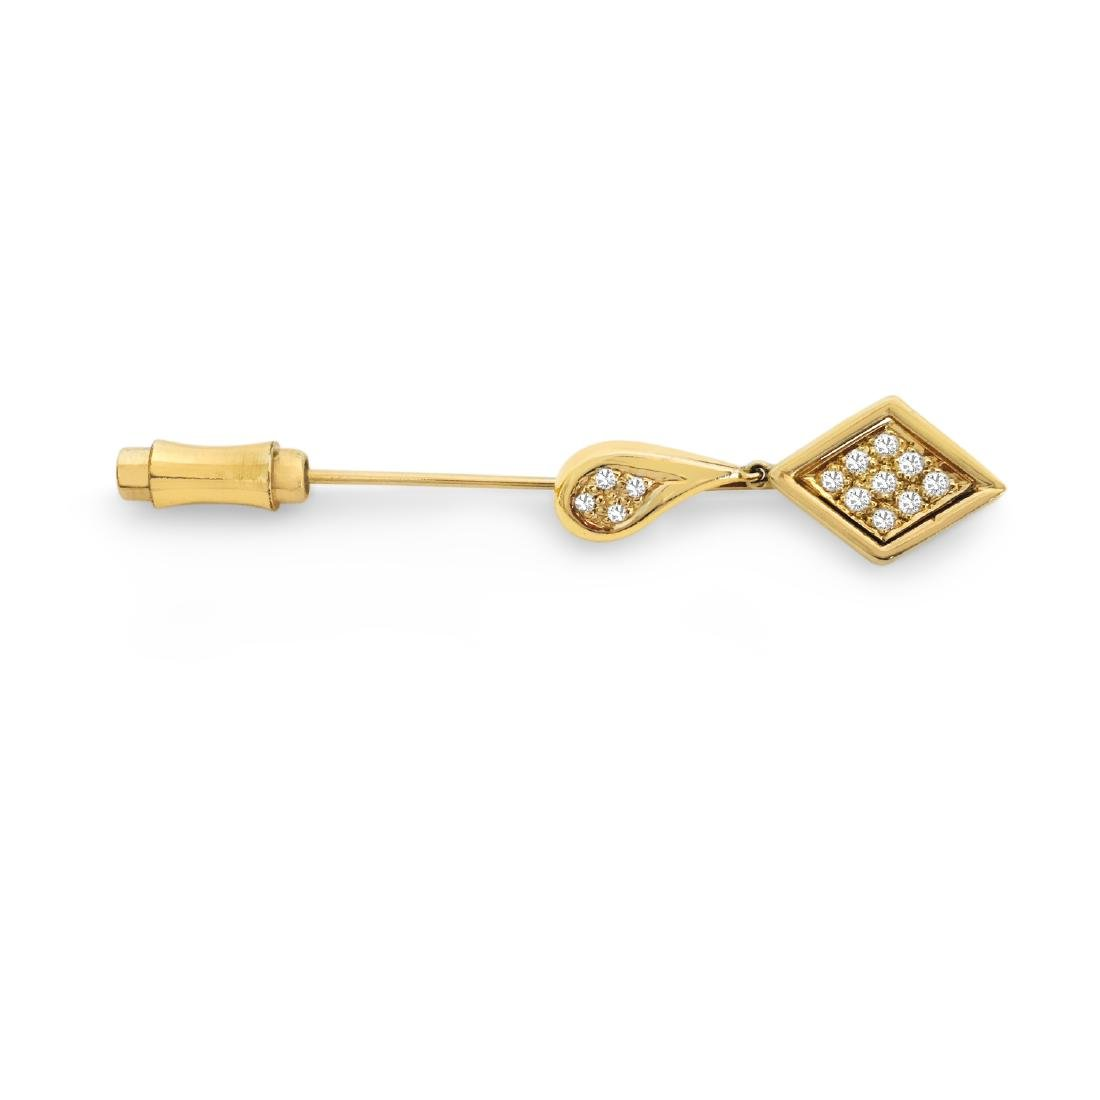 Vintage/Ancient Collectible 14K Gold and Diamond Pin - 2